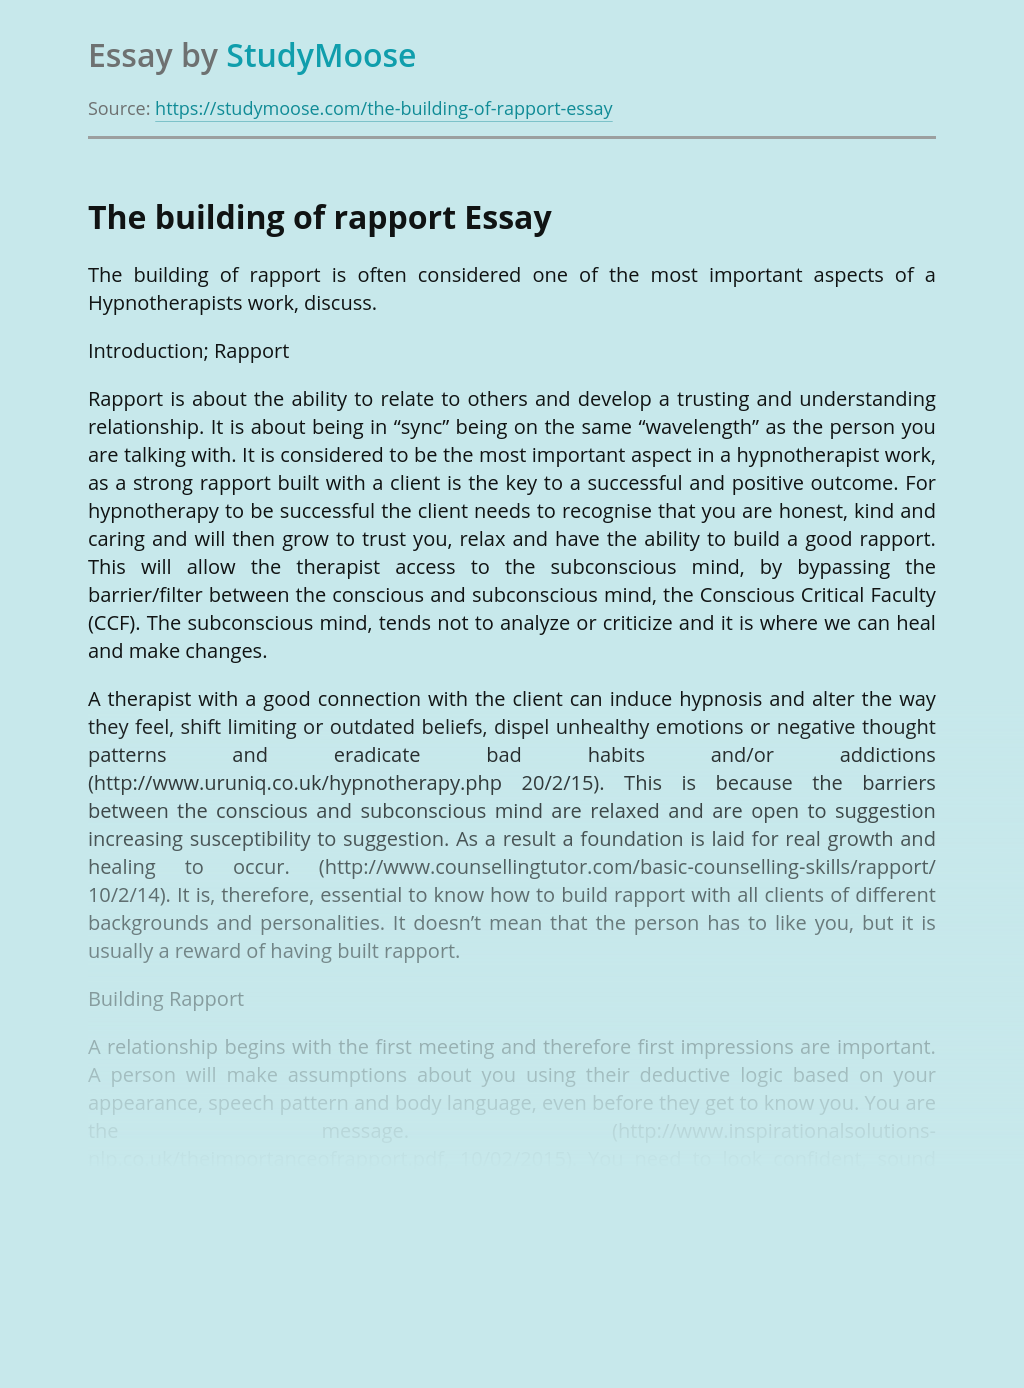 The building of rapport